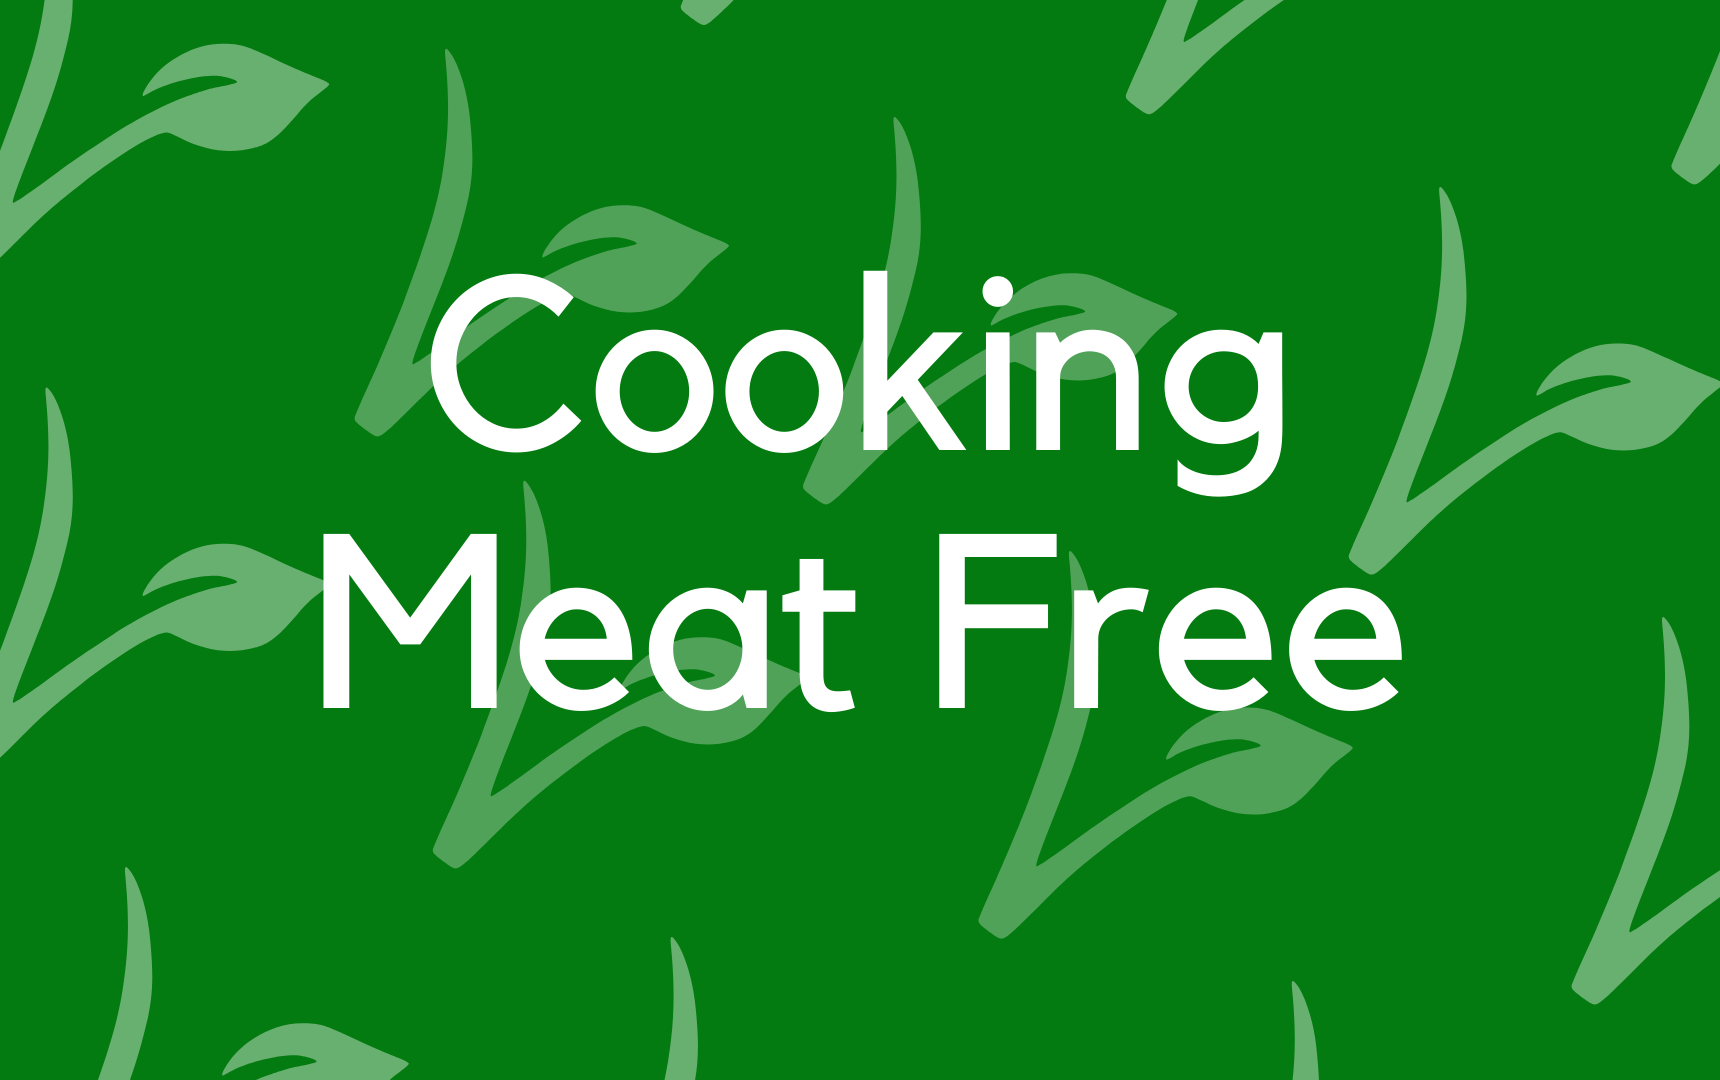 Cooking Meat Free